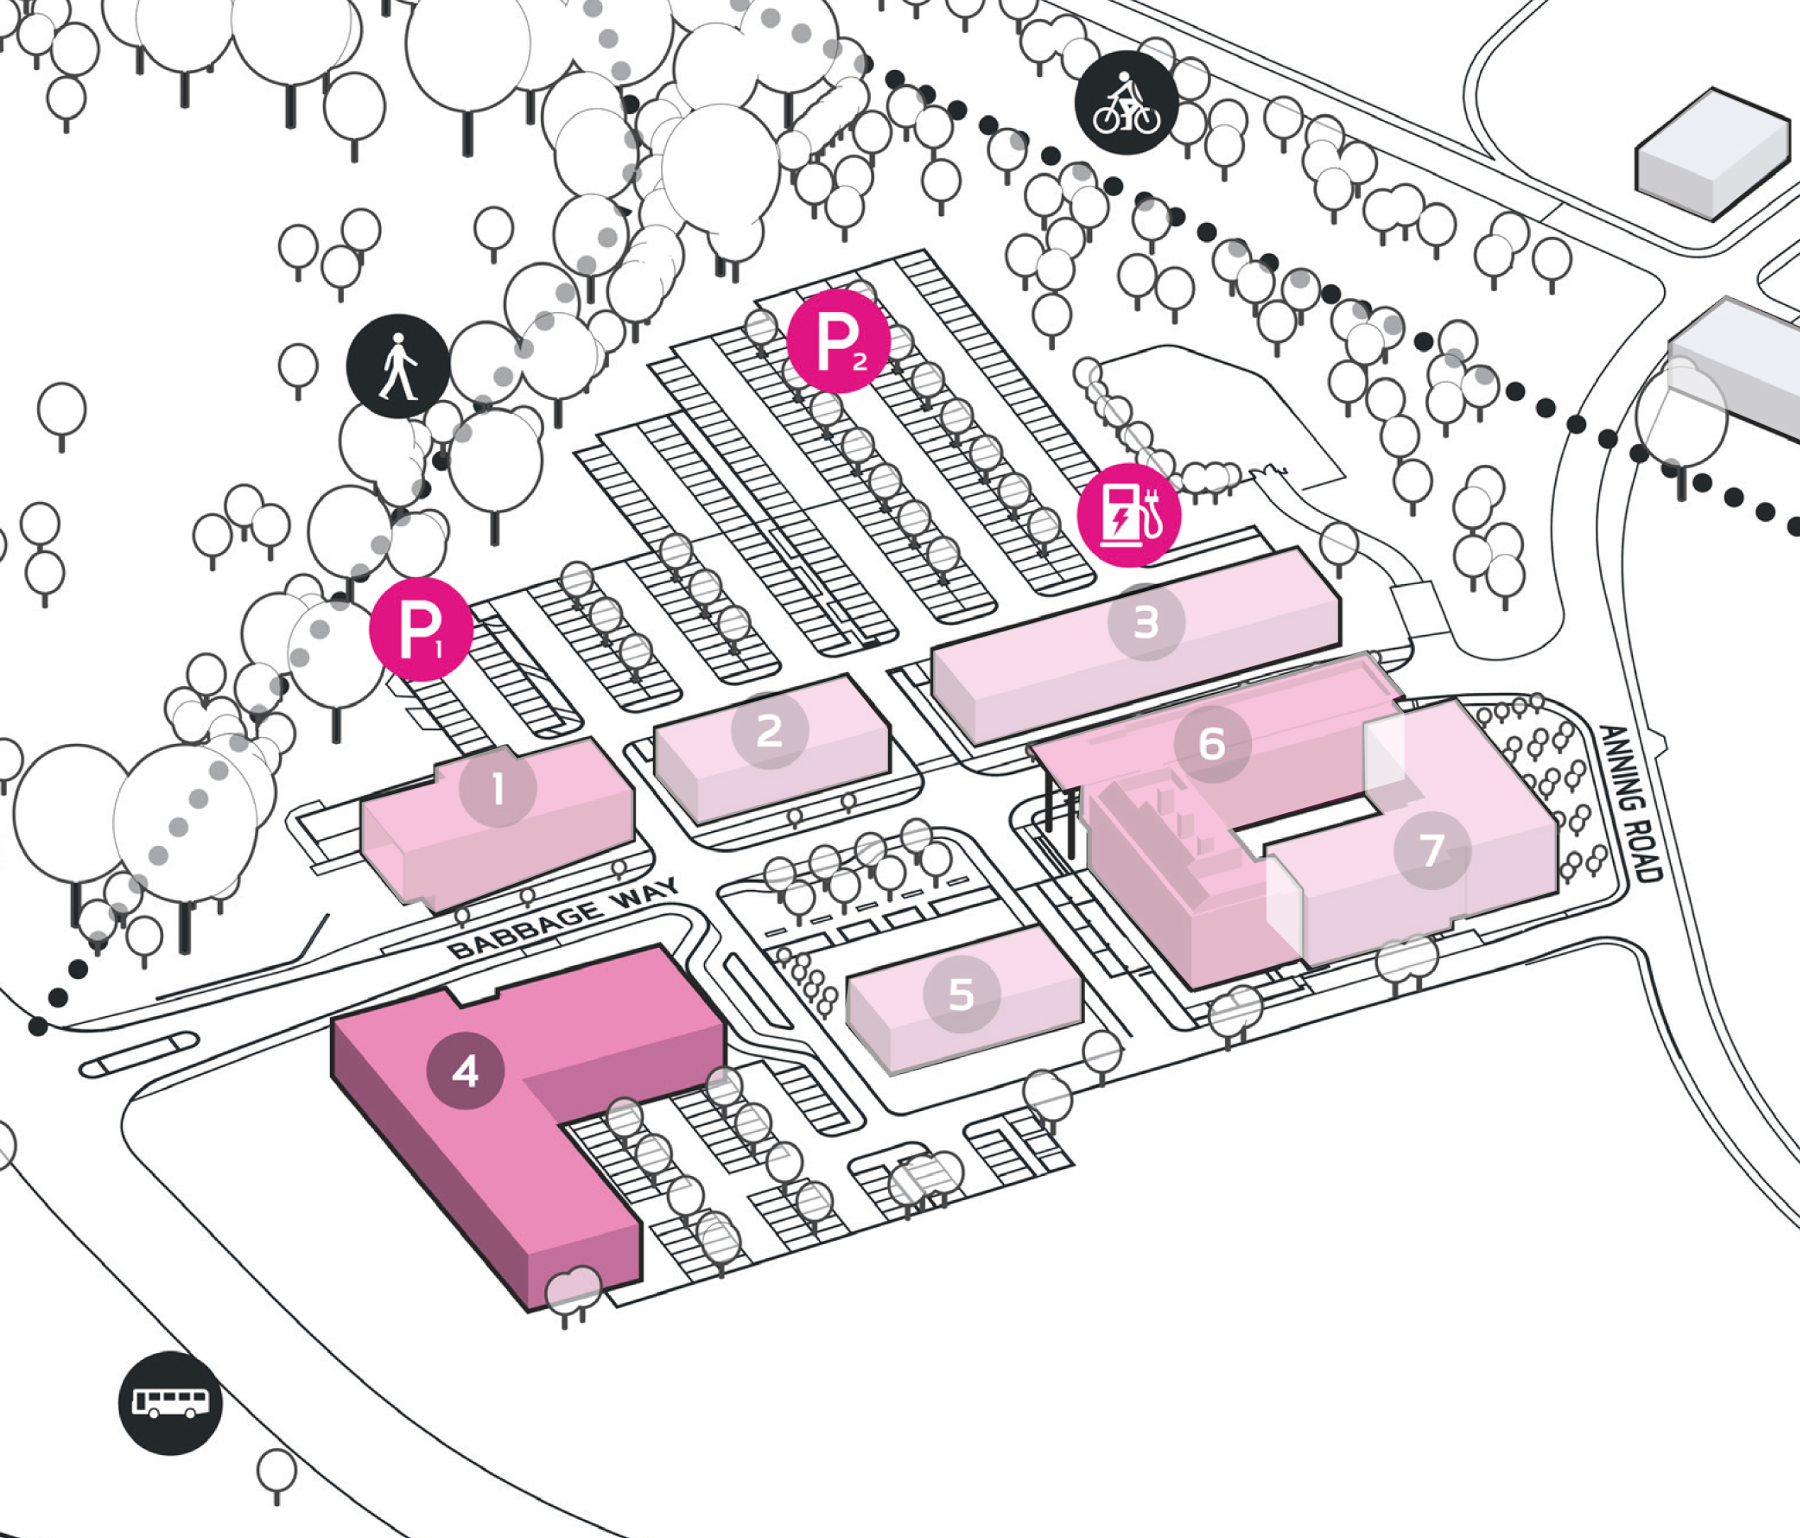 Park Plan highlighting cluster A Building 4